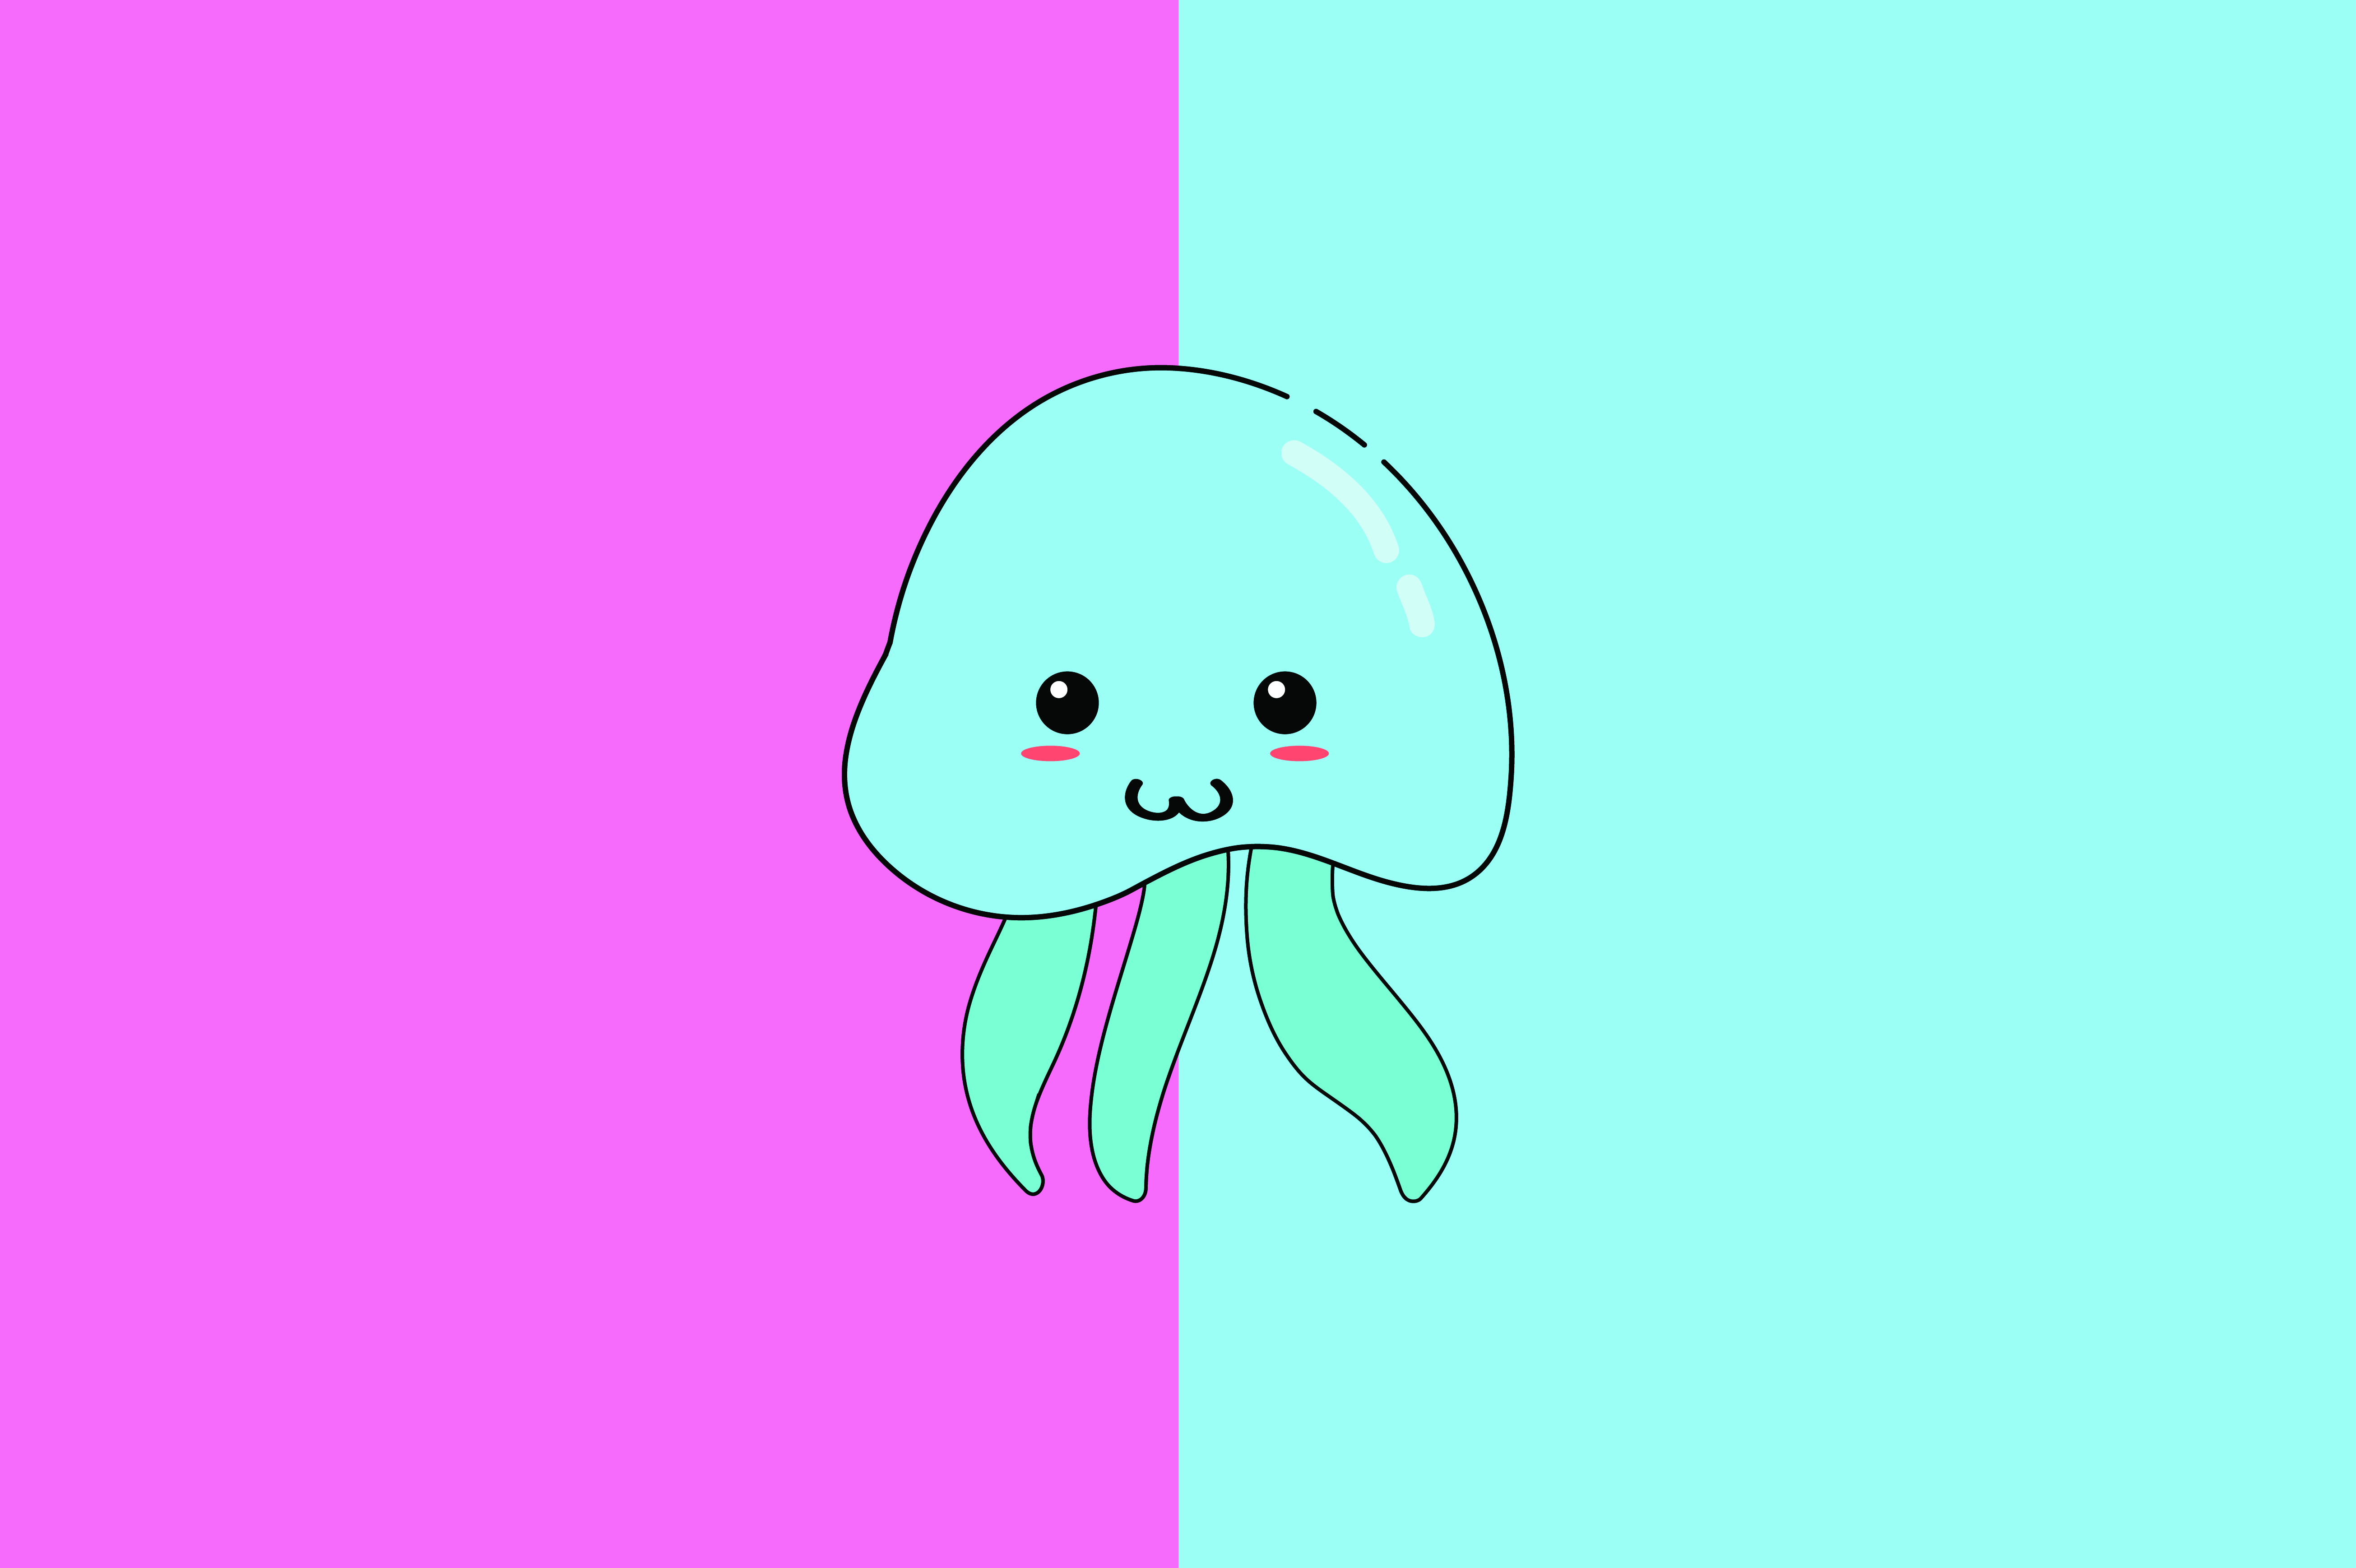 Download Free Jellyfish Kawaii Cute Illustration Graphic By Purplebubble for Cricut Explore, Silhouette and other cutting machines.